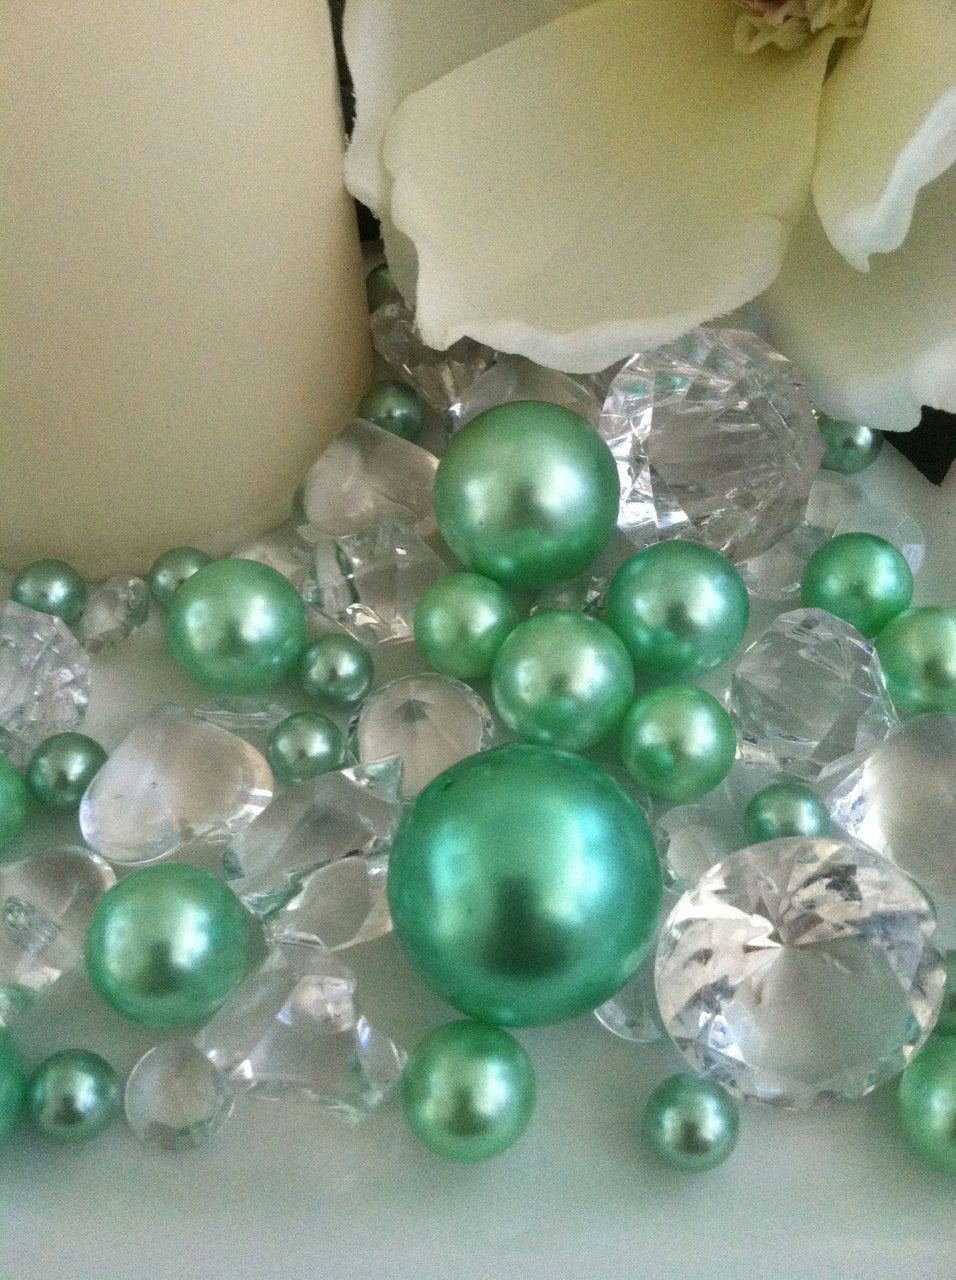 80pc Seafoam Green Pearl & Clear Diamond Gems Table Scatter, Vase Filler Diamonds & Pearls